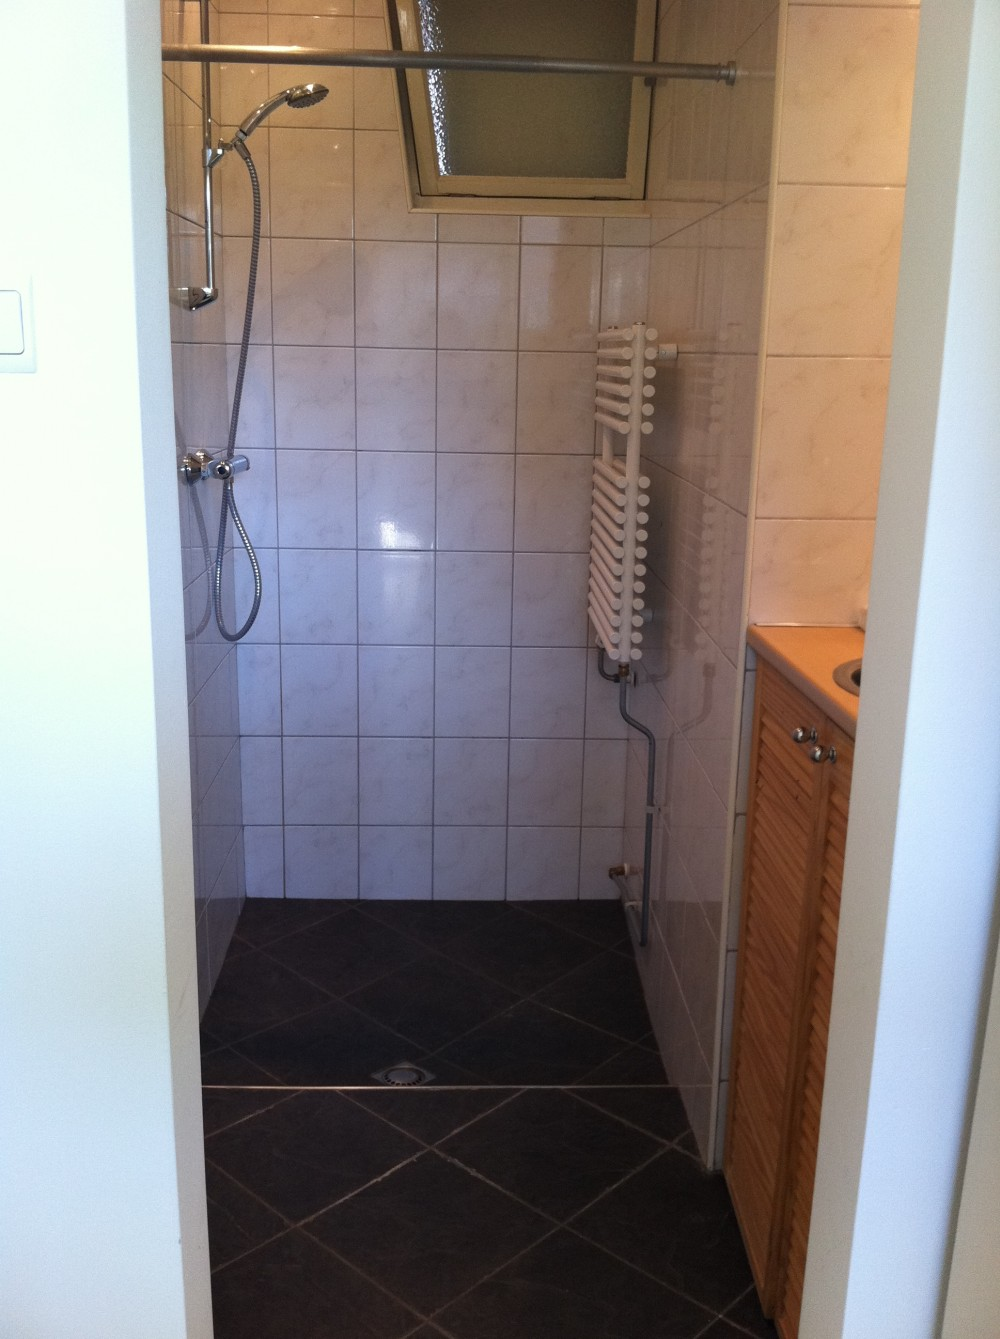 For Rent - 2-room apartment in the center of Enschede (nearby Saxion ...